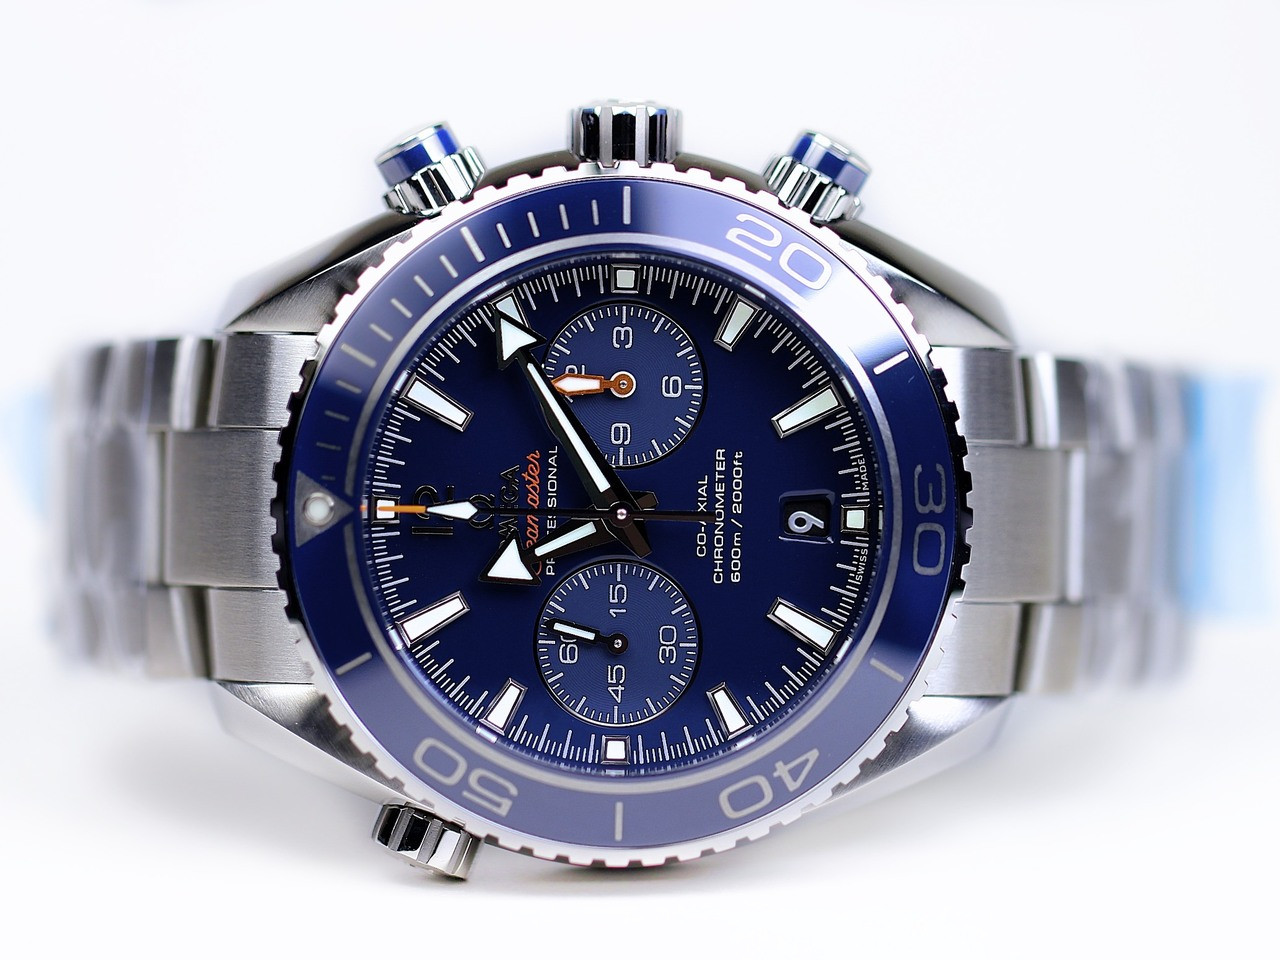 Omega Seamaster Planet Ocean Chronograph 600 M Co-Axial 42mm Titanium Mens  Swiss Watch 5d6097cbfa1